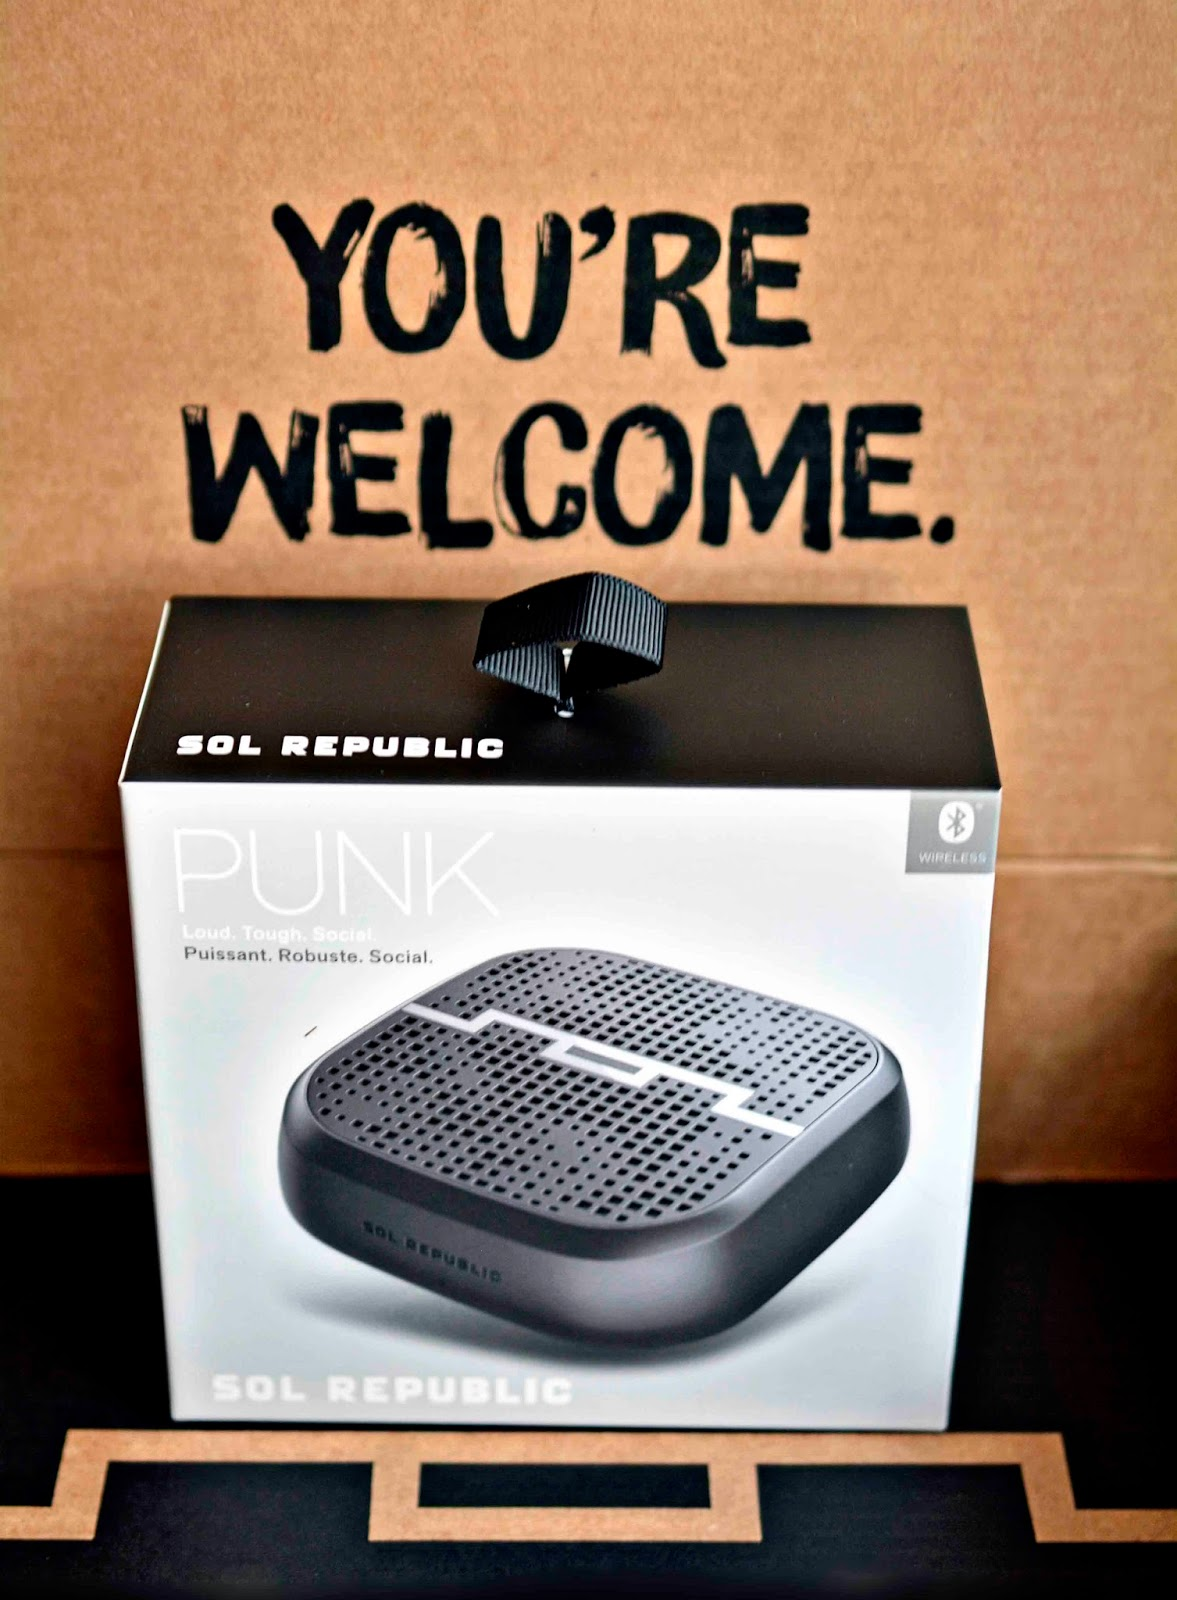 SOL REPUBLIC PUNK WIRELESS SPEAKER